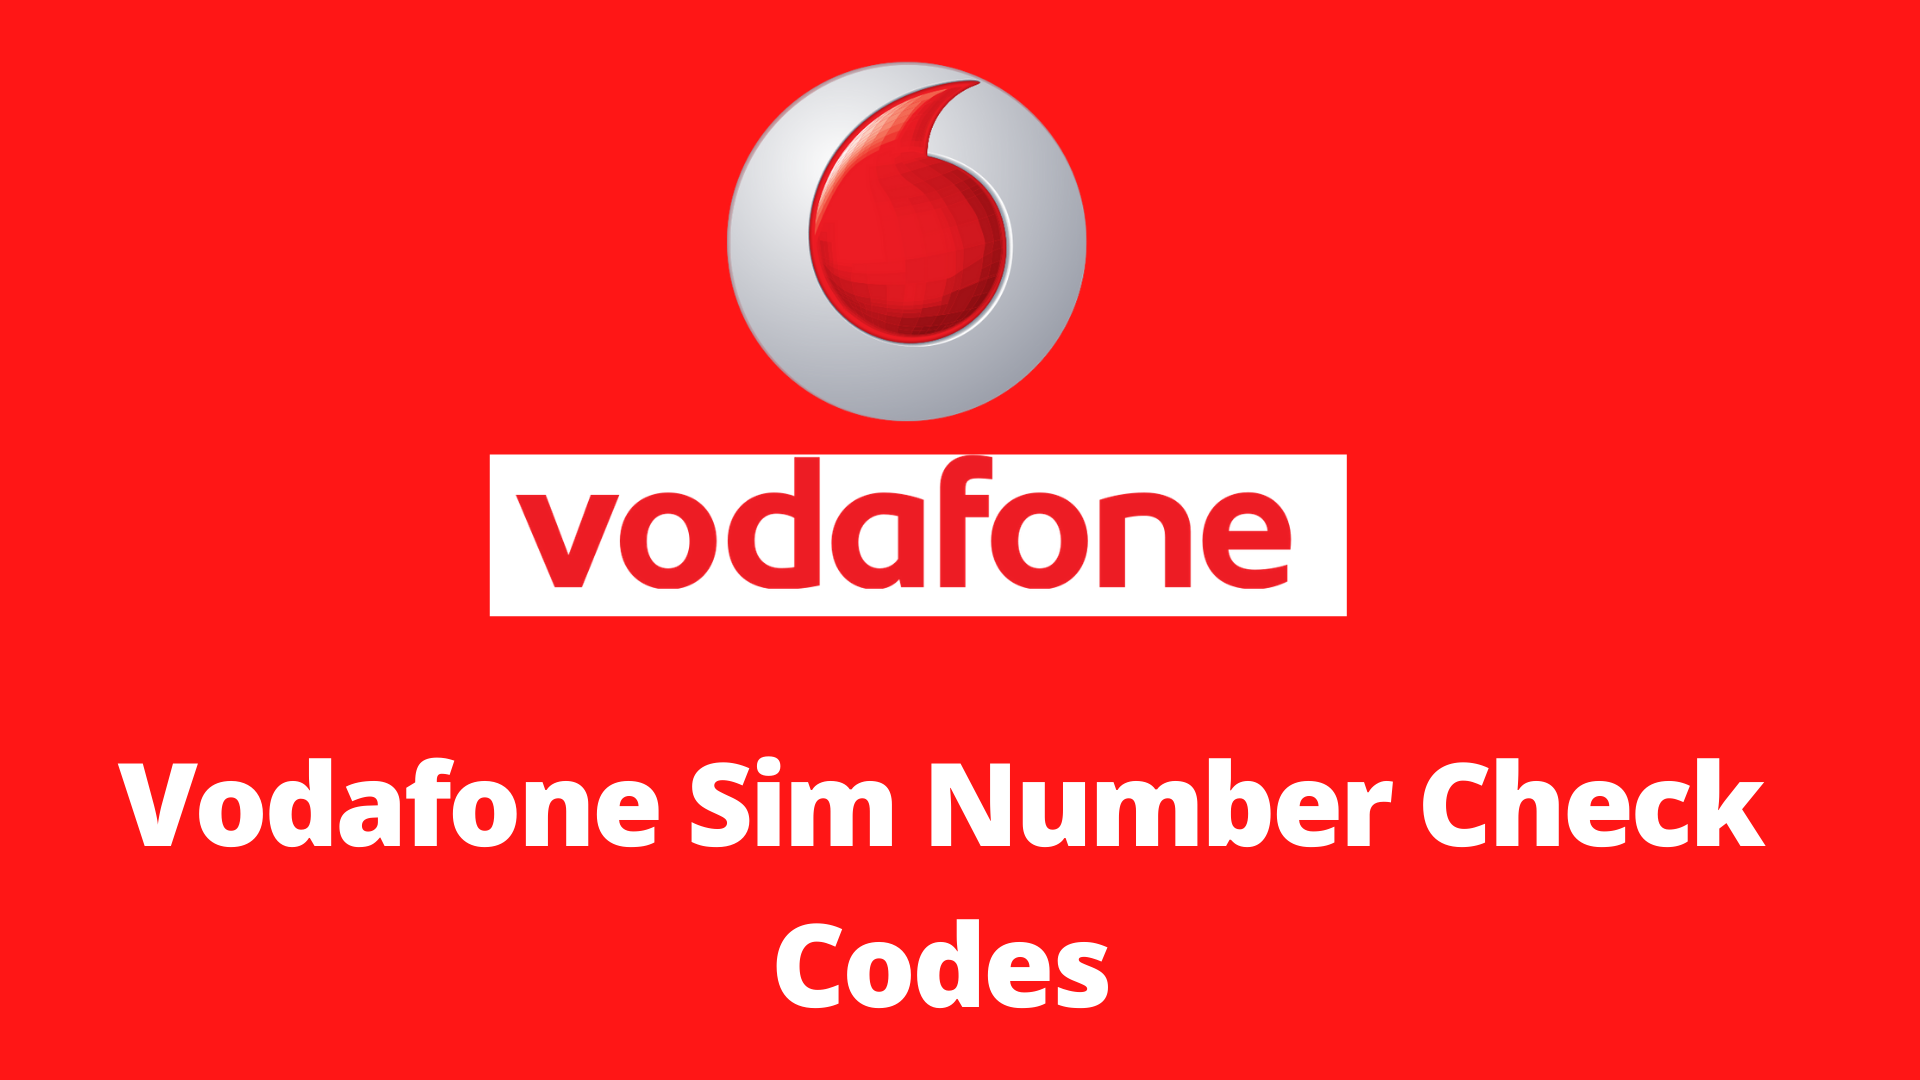 Vodafone Sim Number Check